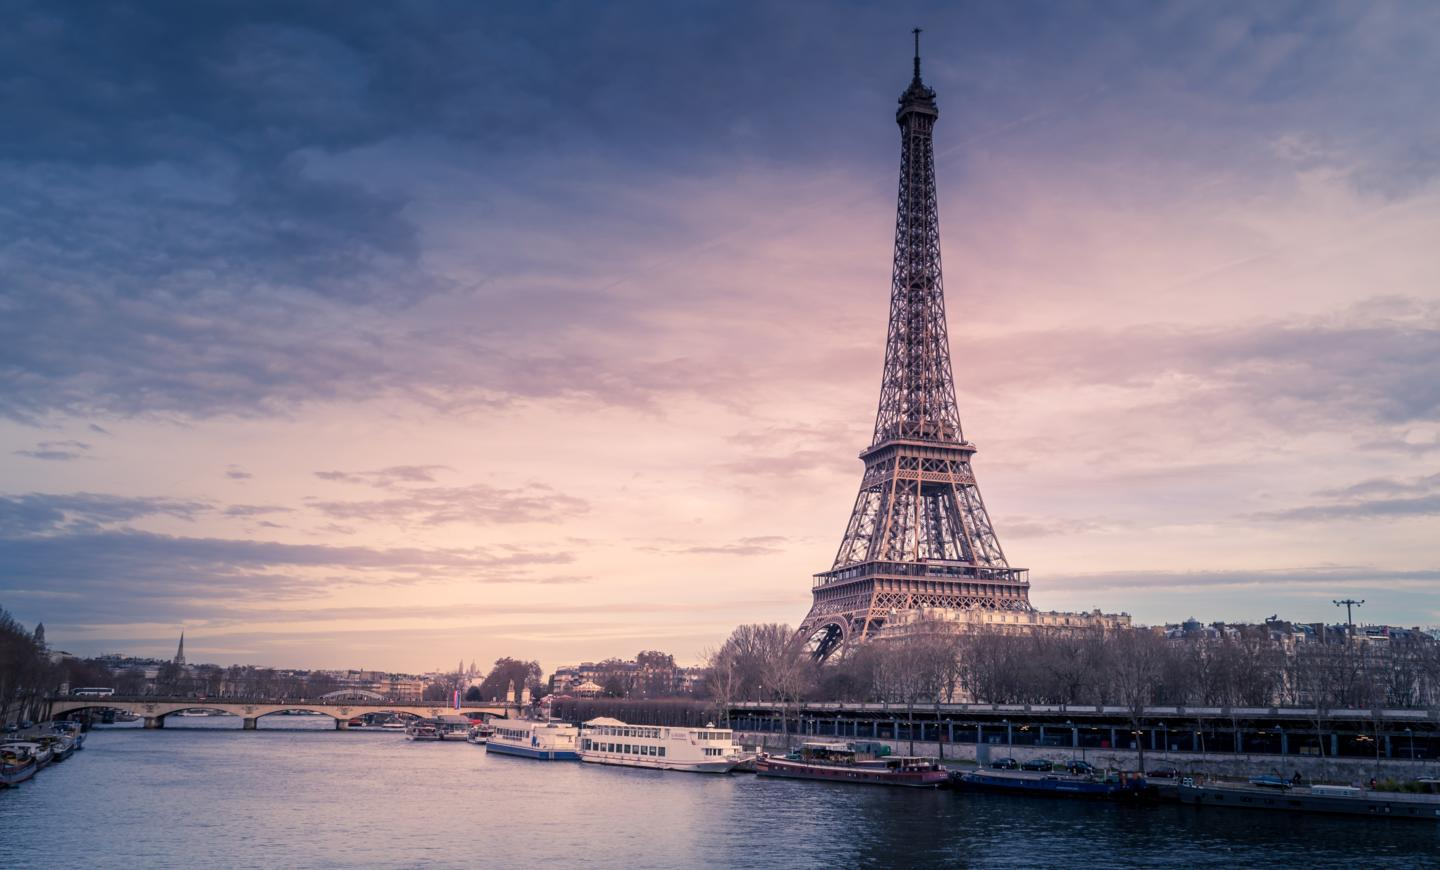 beautiful-wide-shot-eiffel-tower-paris-surrounded-by-water-with-ships-colorful-sky.jpg